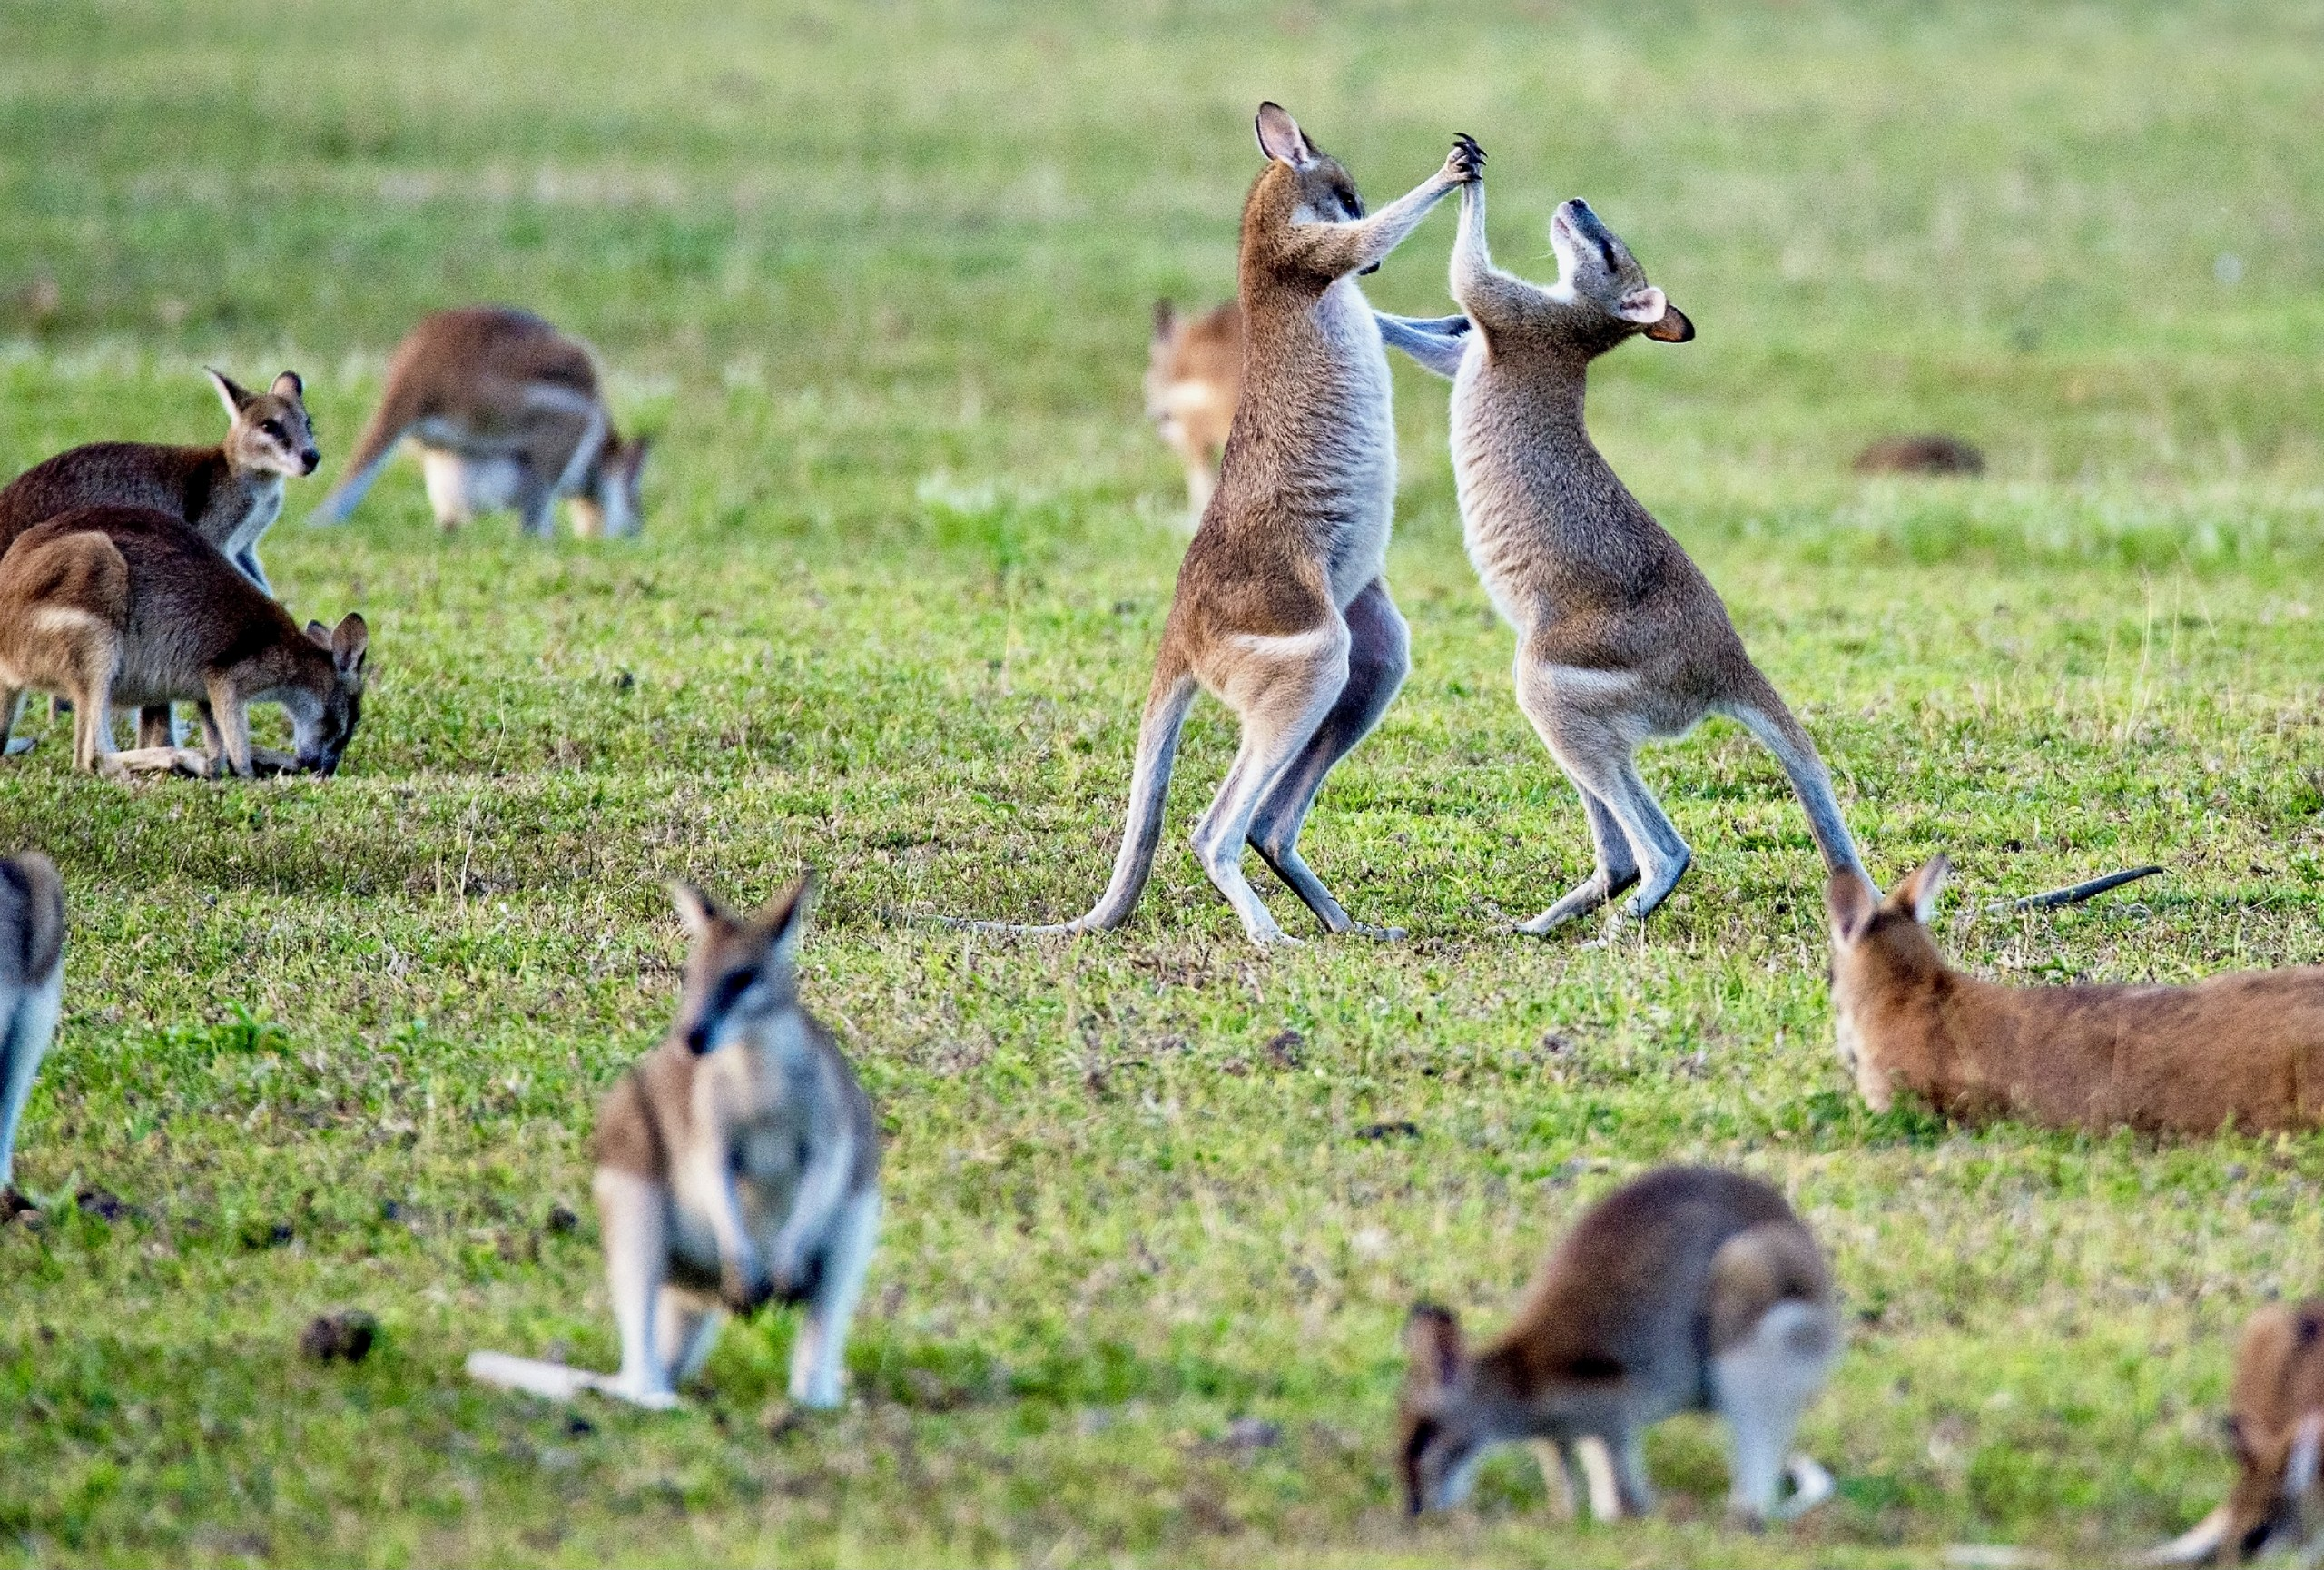 two young kangaroos play fight in a group of kangaroos